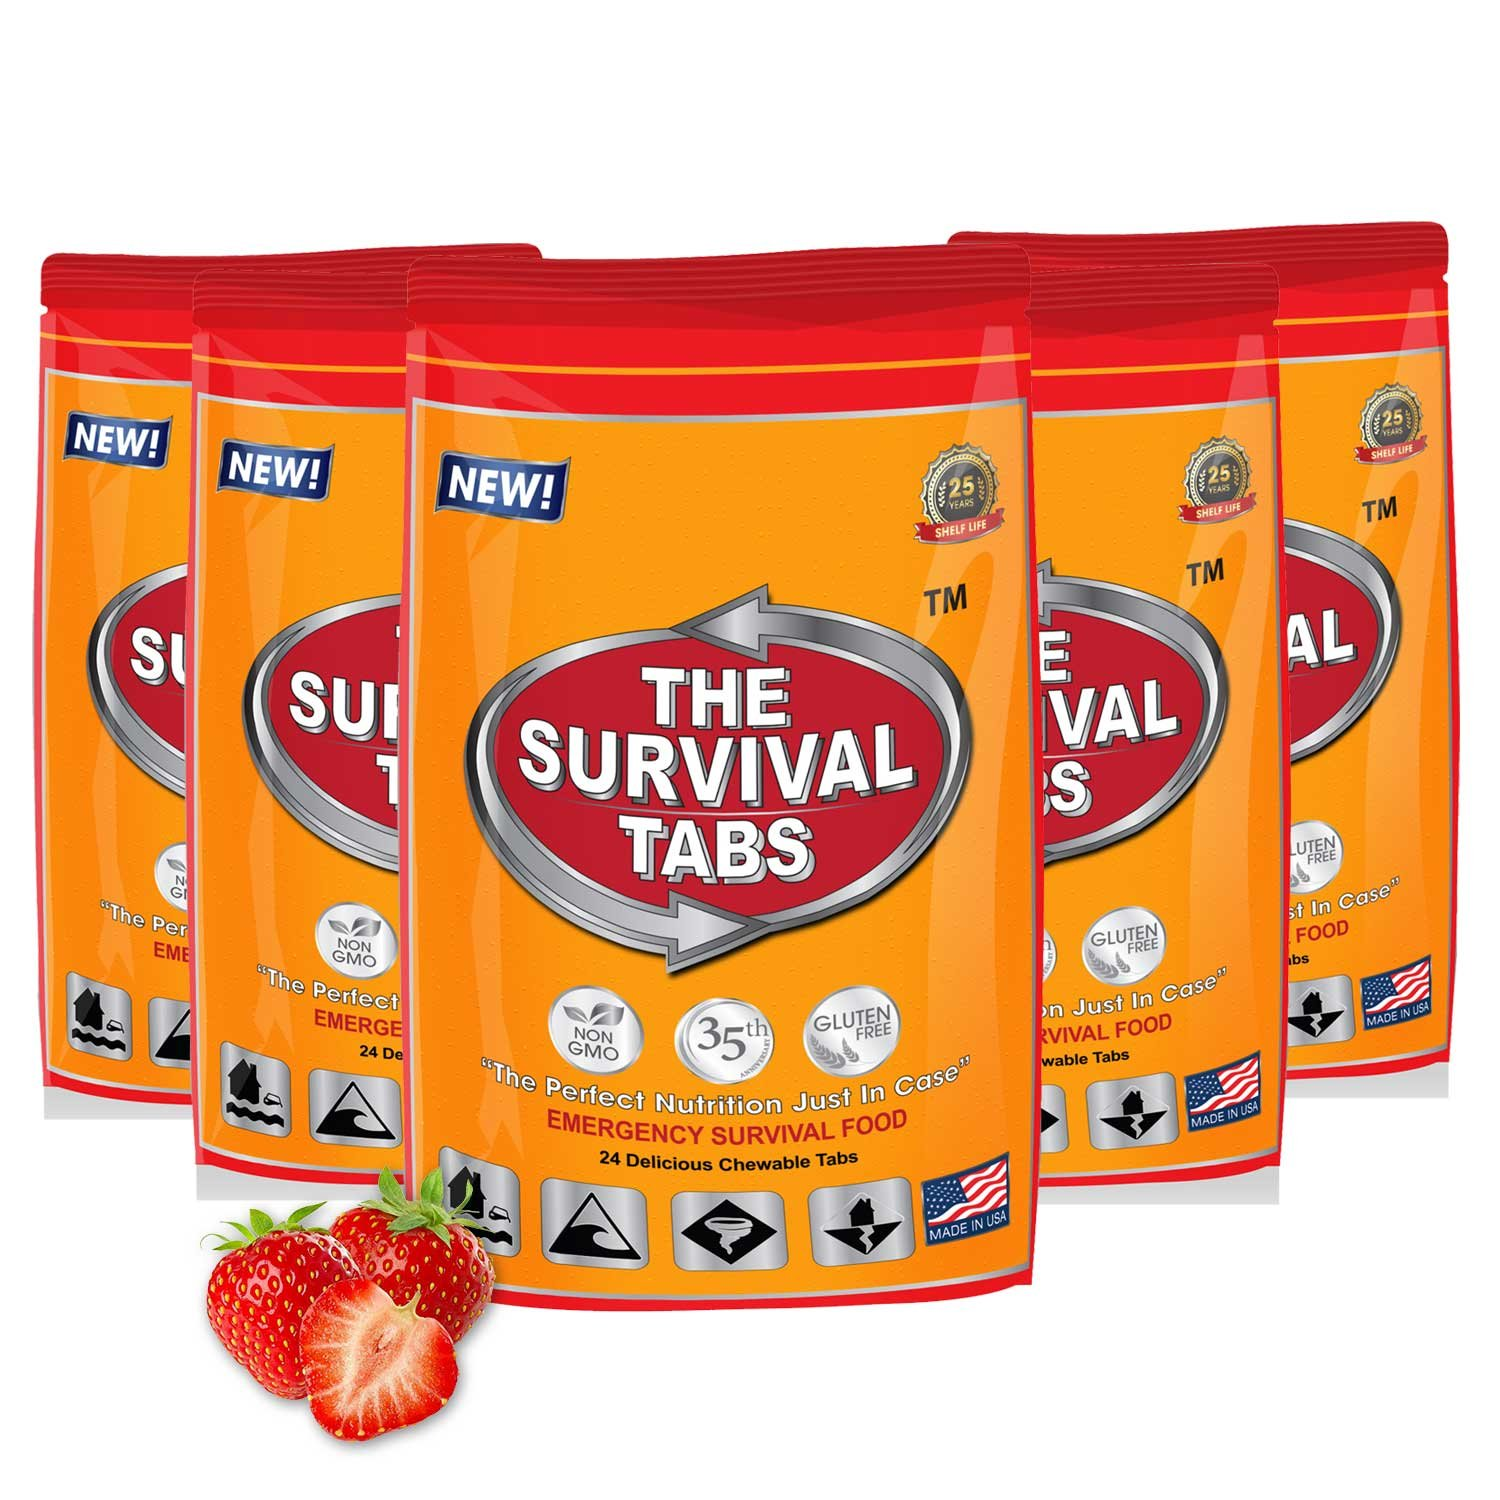 Food Supply Emergency Food Ration in 10 Days 120 tabs Survival MREs for Disaster Preparedness for Earthquake Flood Tsunami Gluten Free and Non-GMO 25 Years Shelf Life - Strawberry Flavor by The Survival Tabs